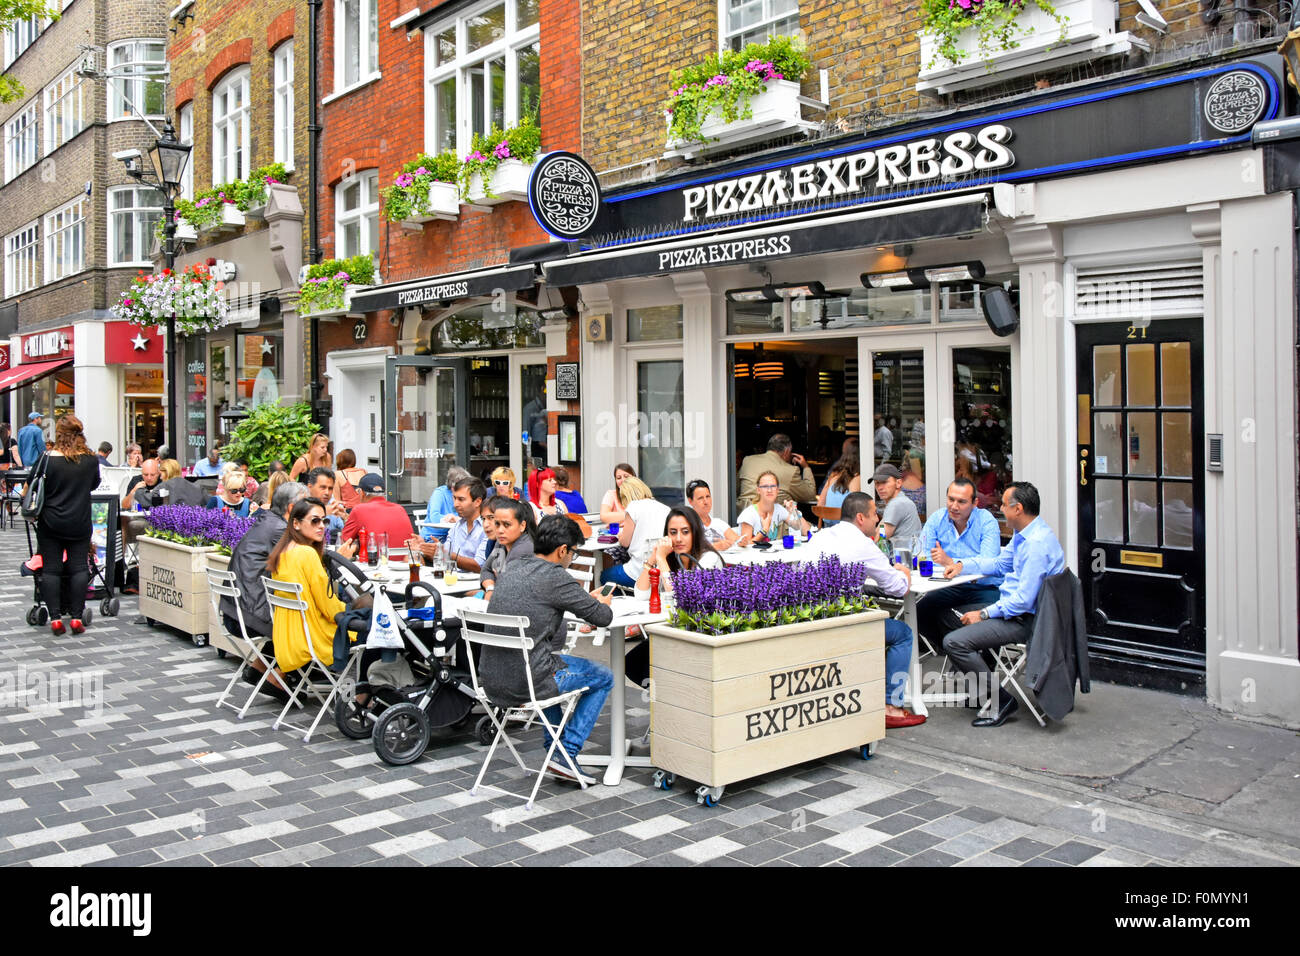 Pizza express bond street